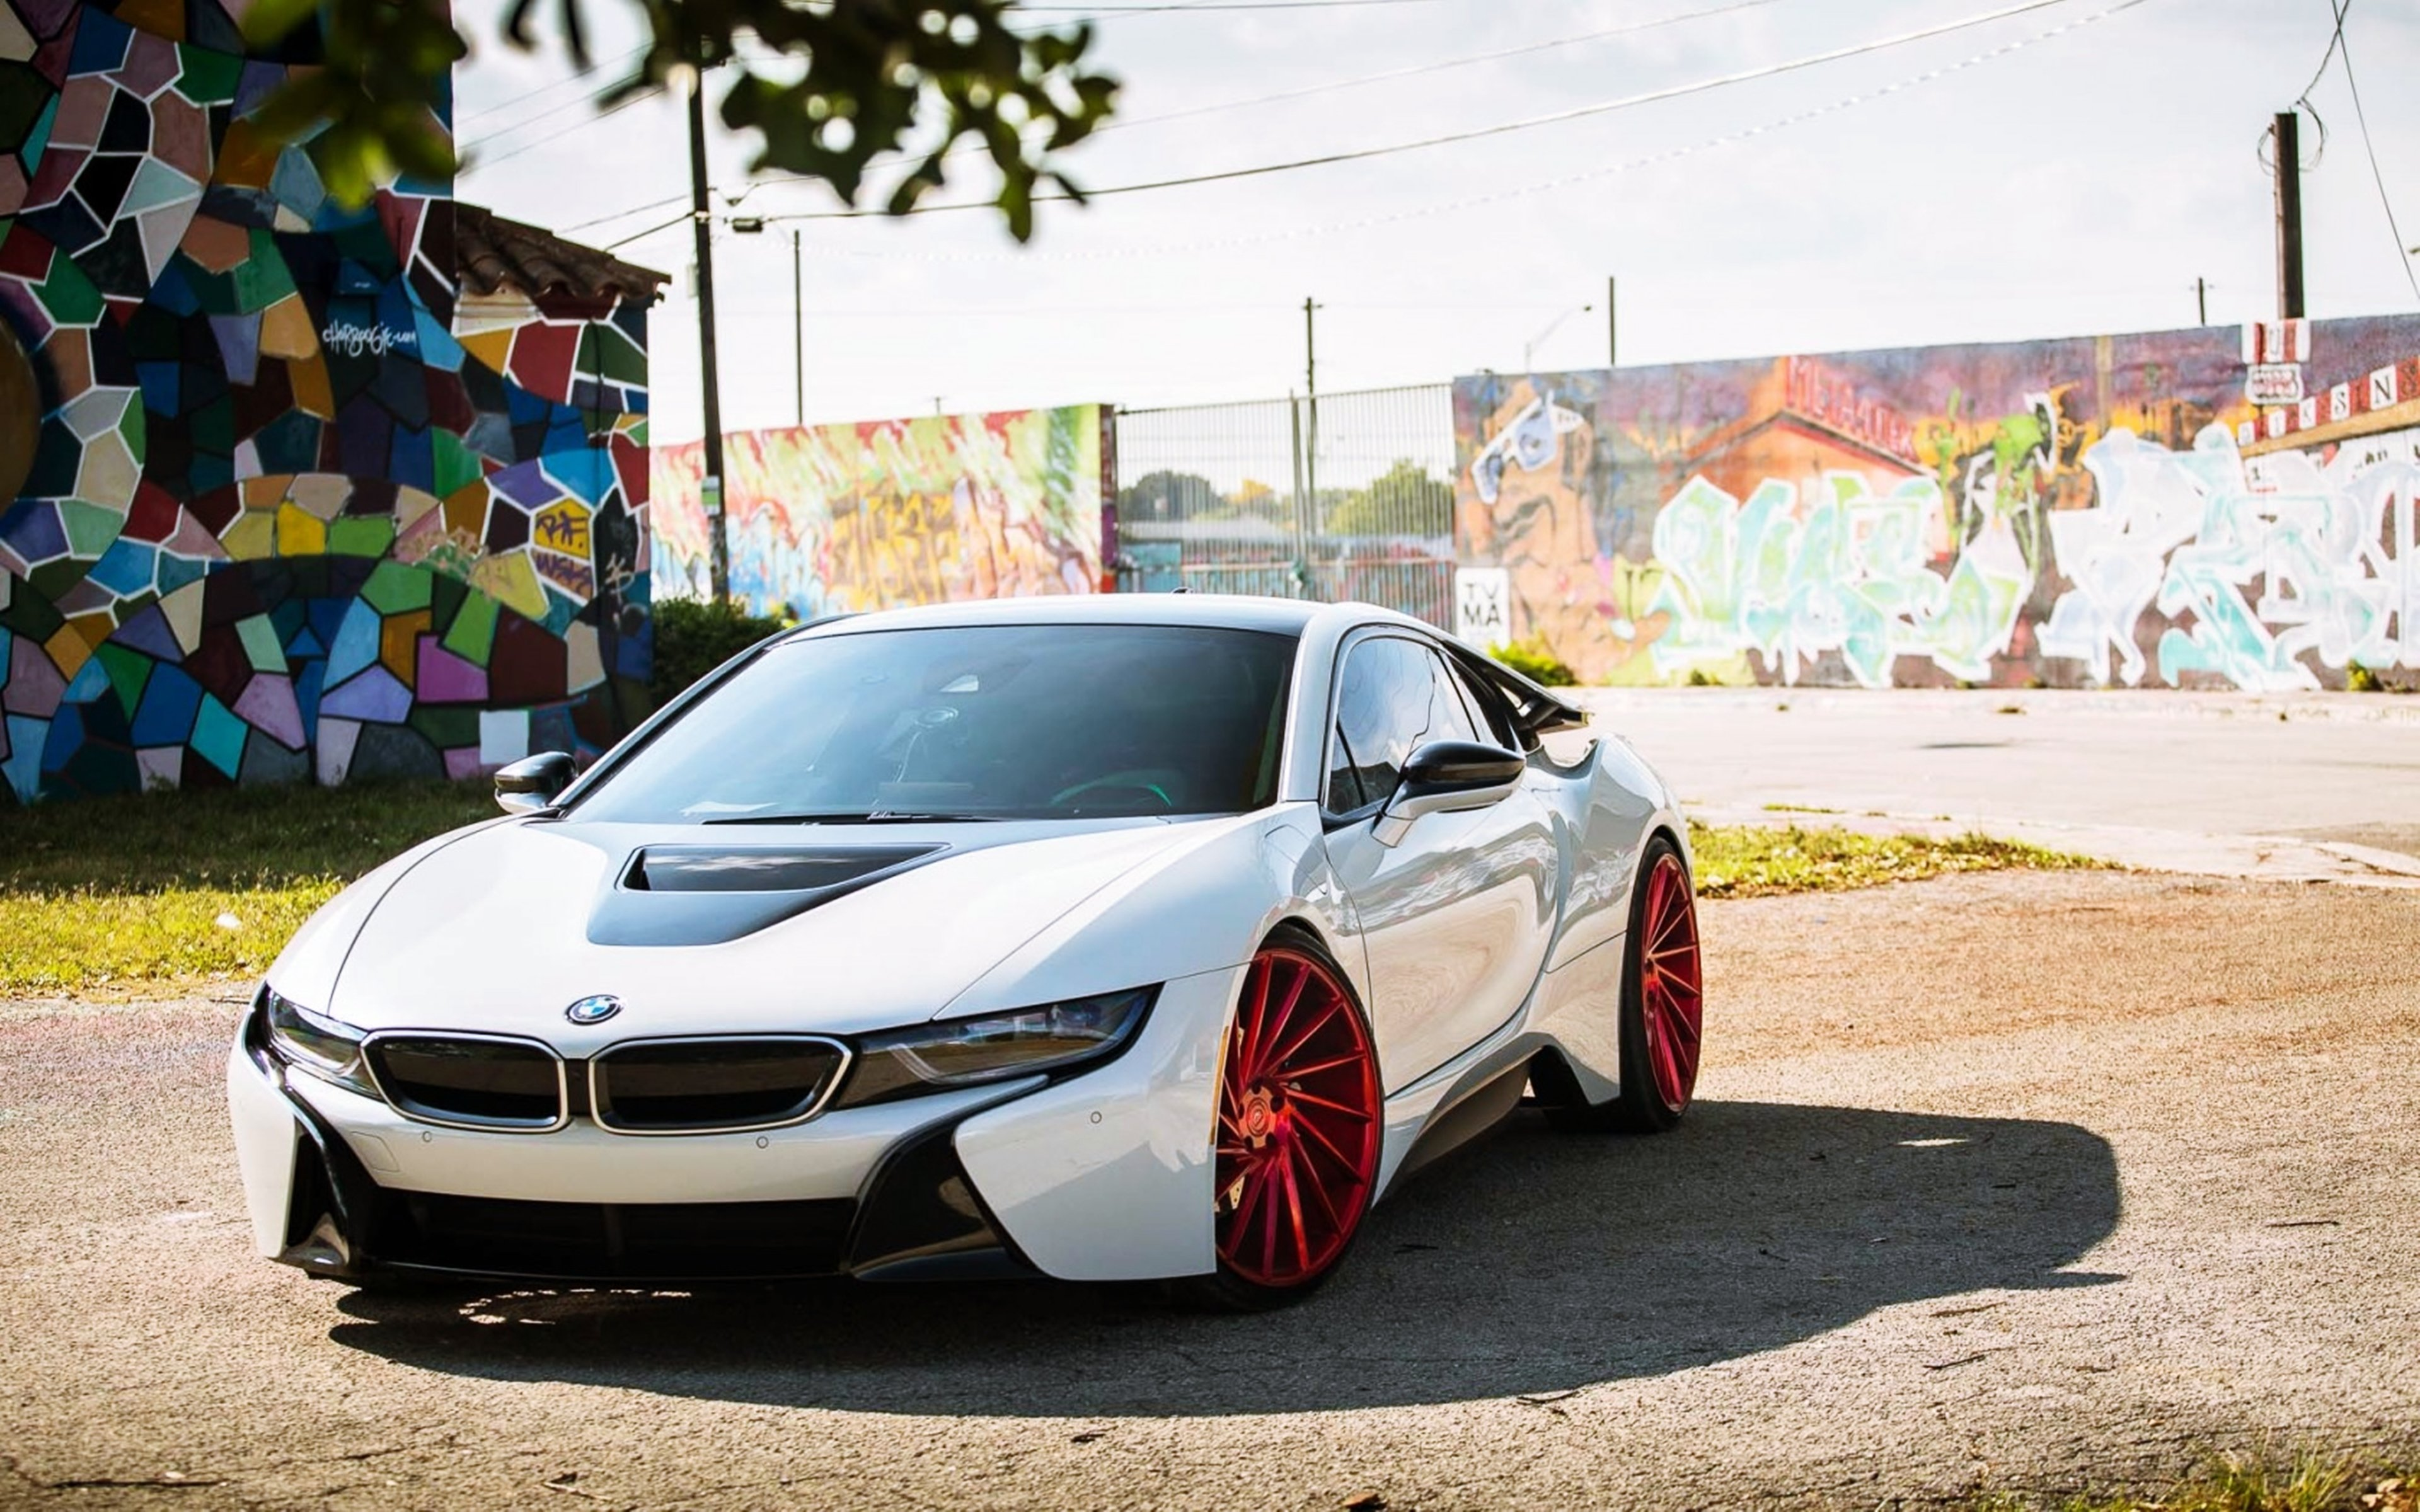 Bmw I8 Electro Cars Tuning White German Wall Drawing City